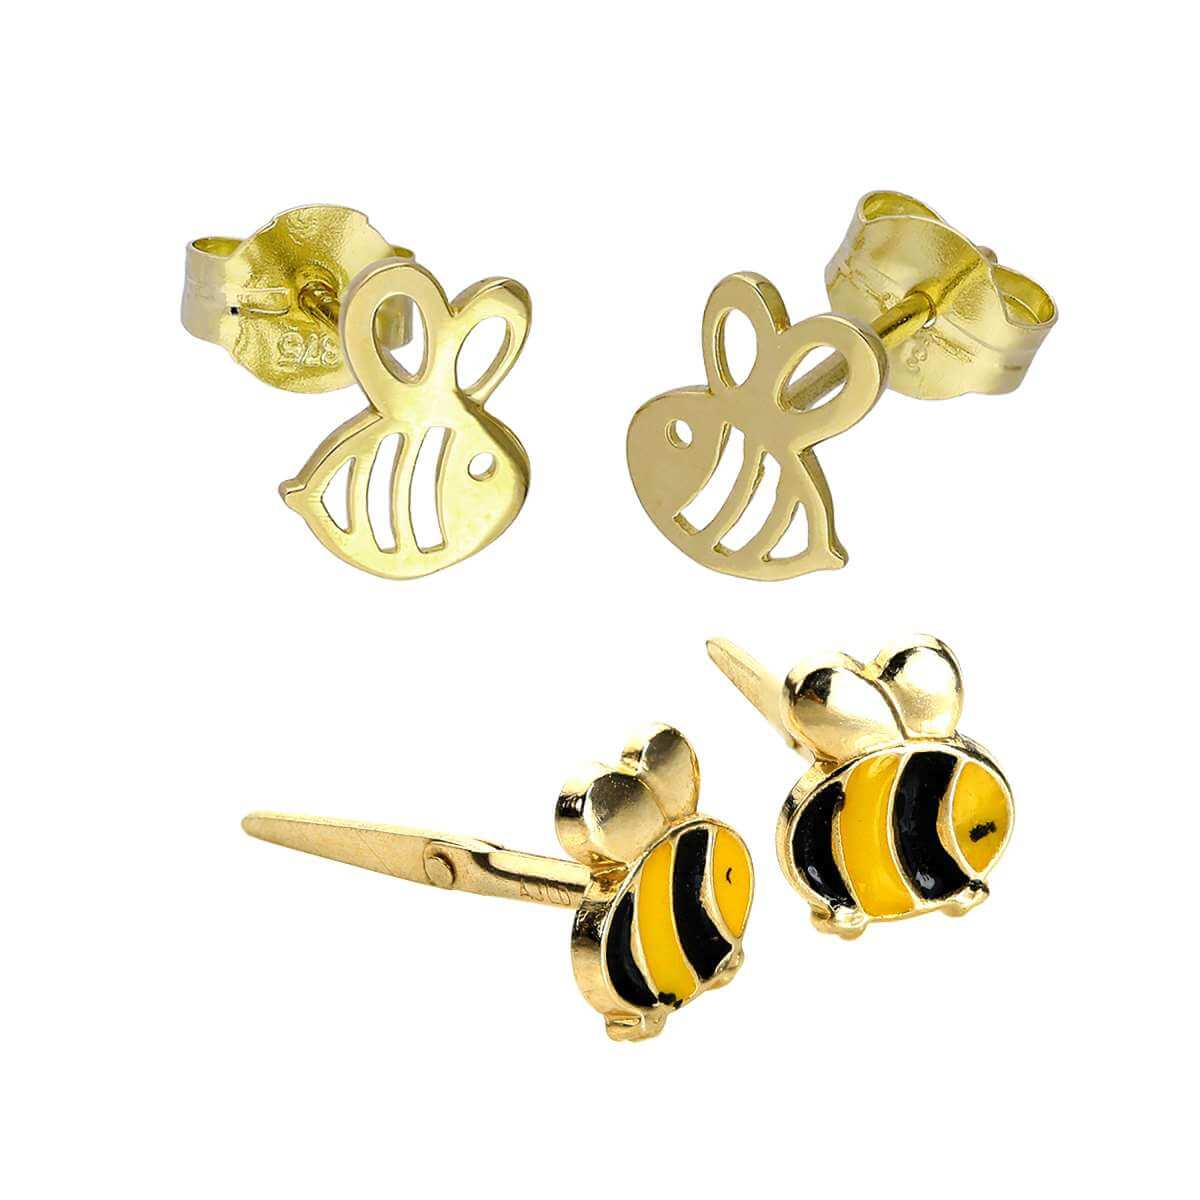 9ct Gold Kids Enamel & Cut Out Bees Stud Earrings Set